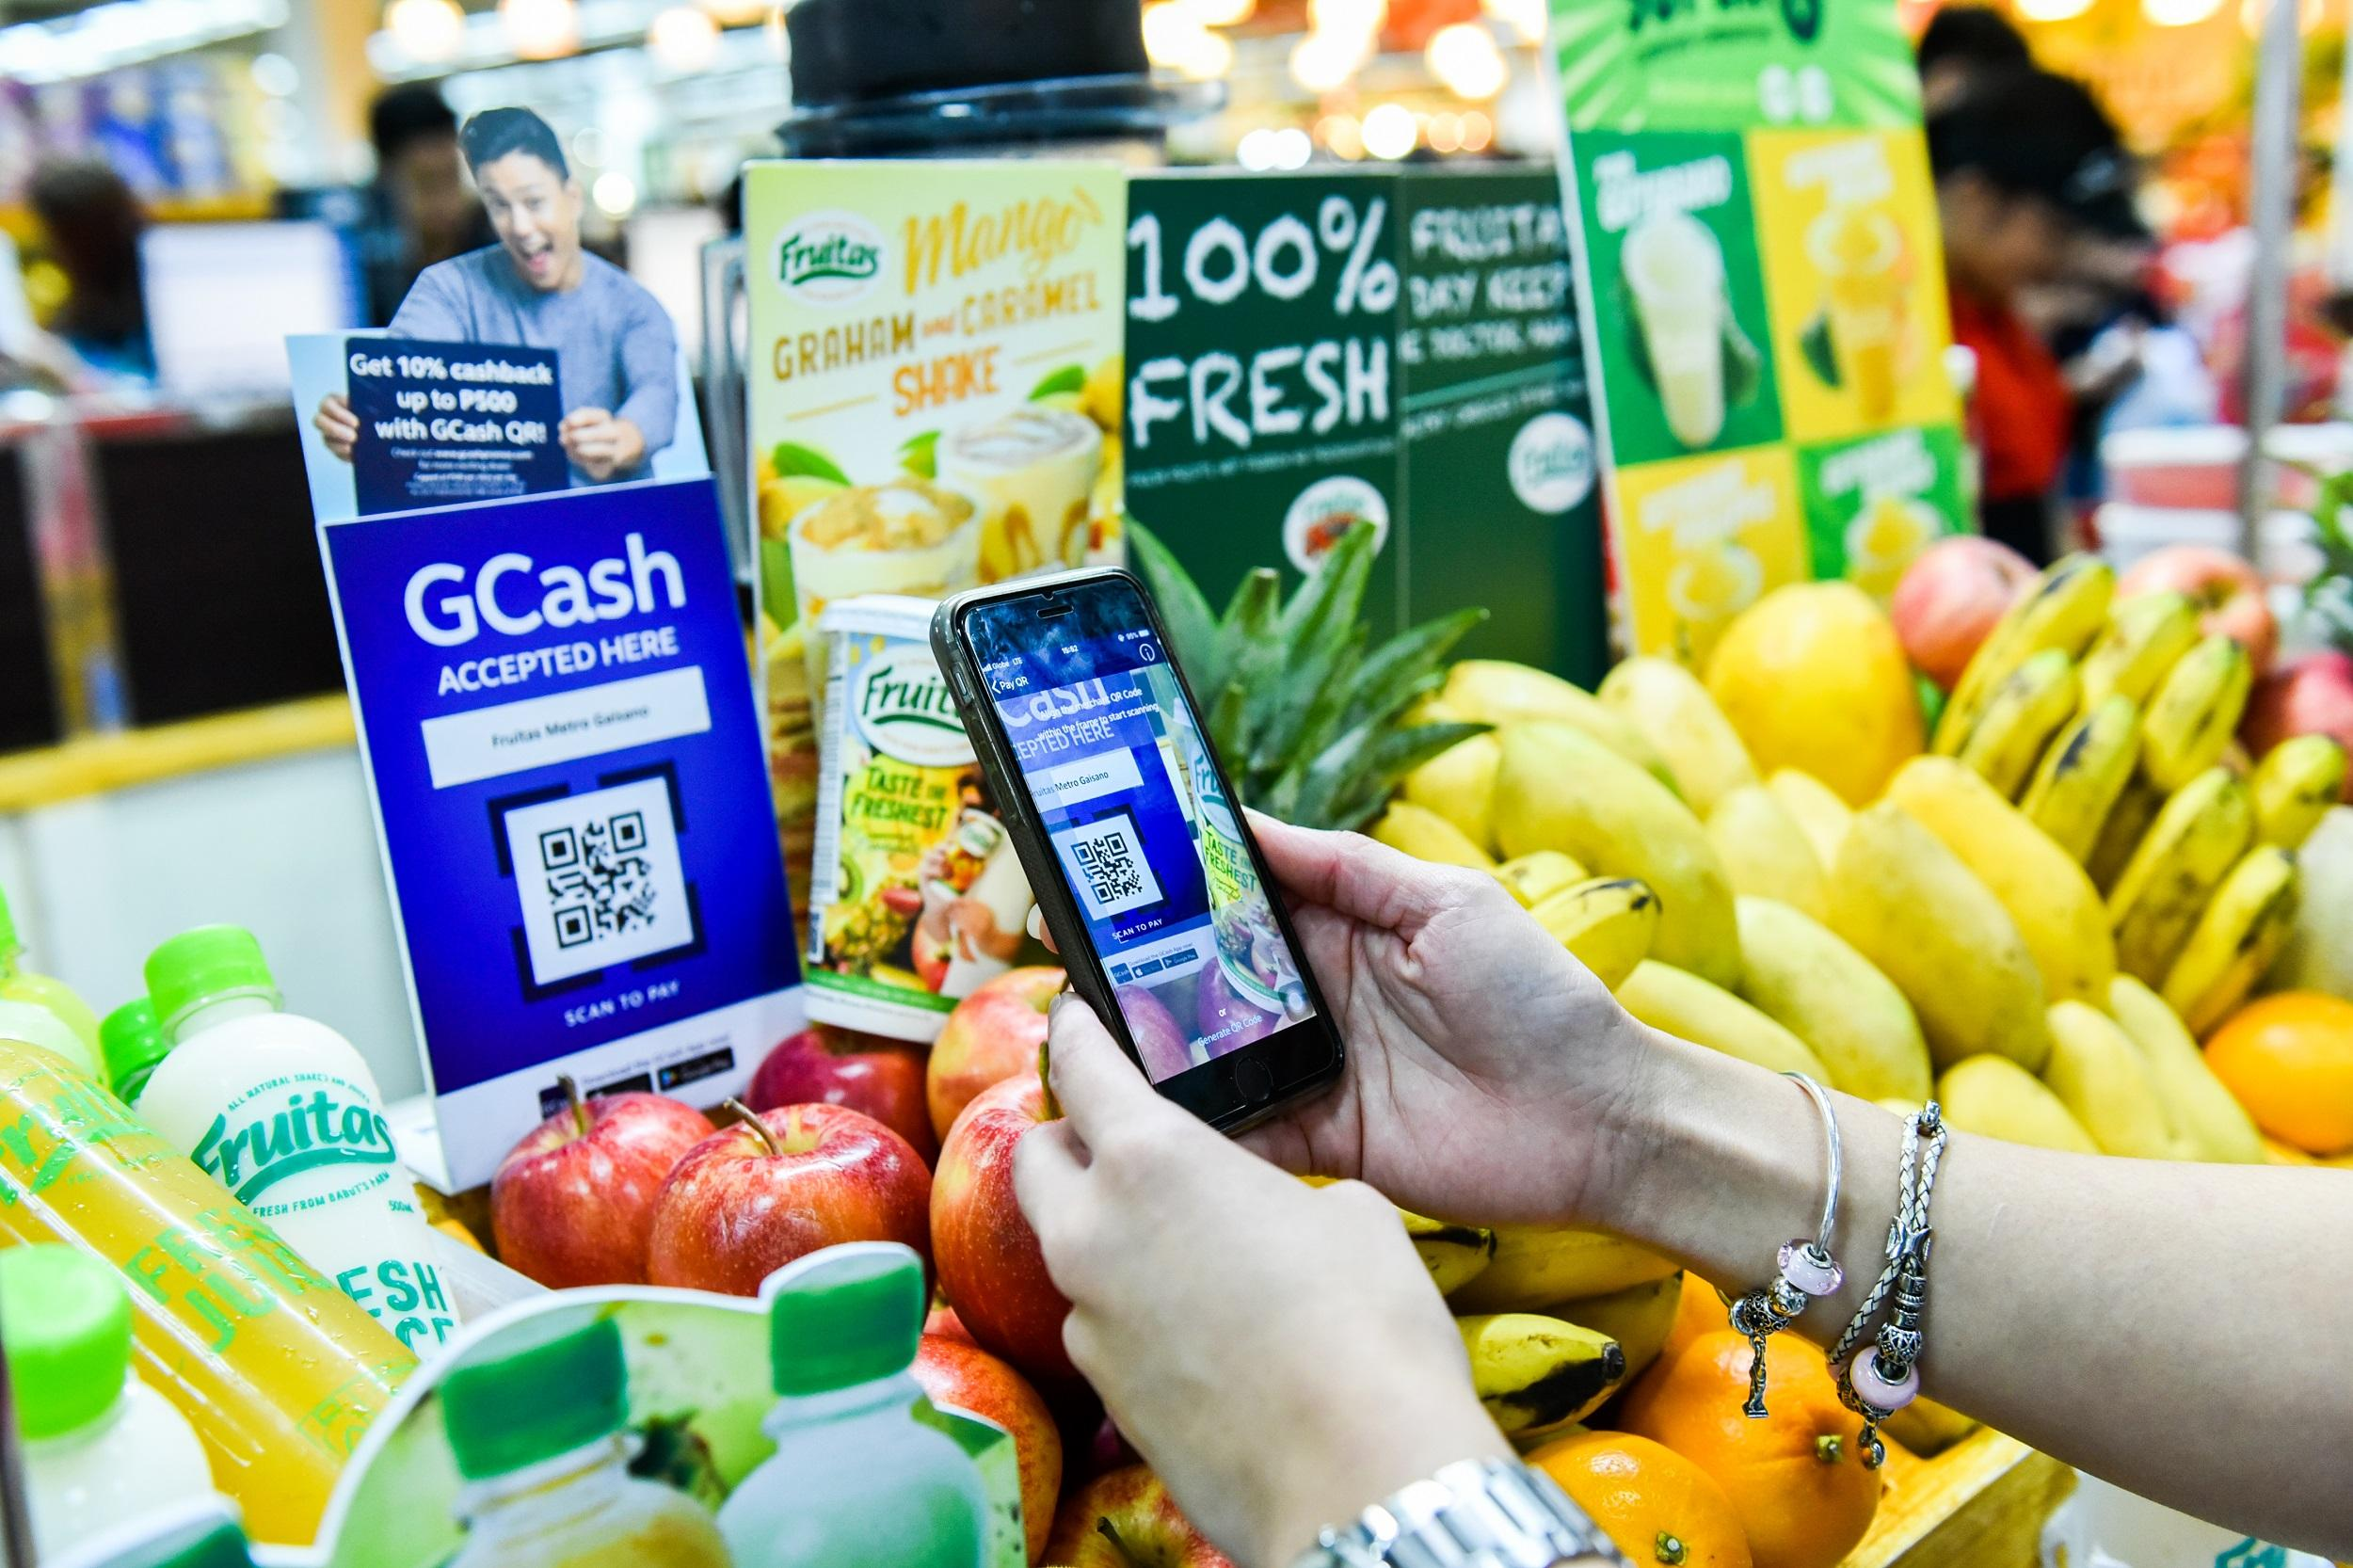 GCash reports tenfold growth in subscriber base in 3 years